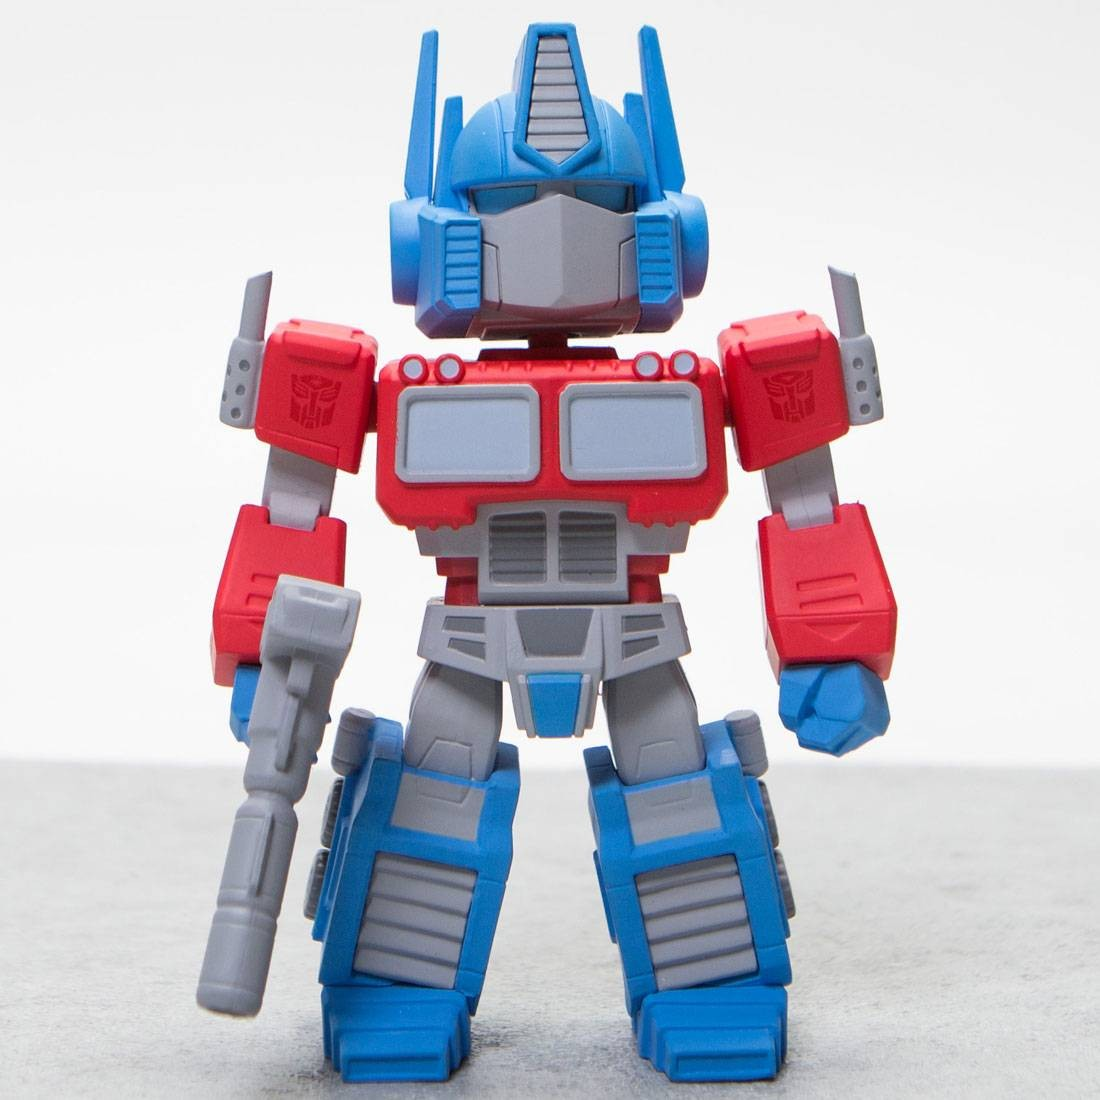 BAIT x Transformers x Switch Collectibles Optimus Prime 4.5 Inch Figure - TV Edition